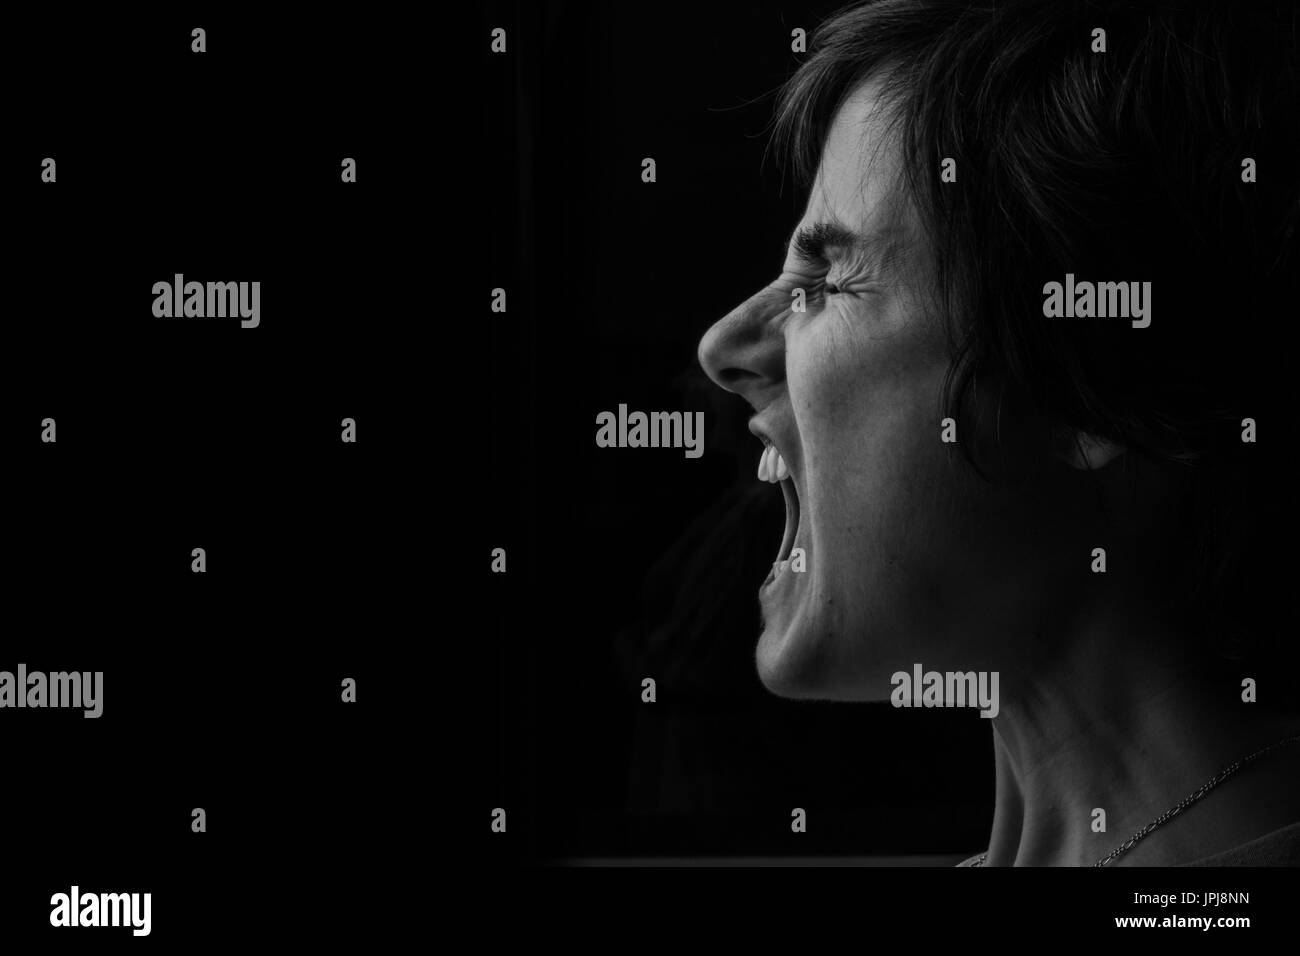 Depressed woman screaming to be heard, showing what it feels like living with Depression and Anxiety. - Stock Image